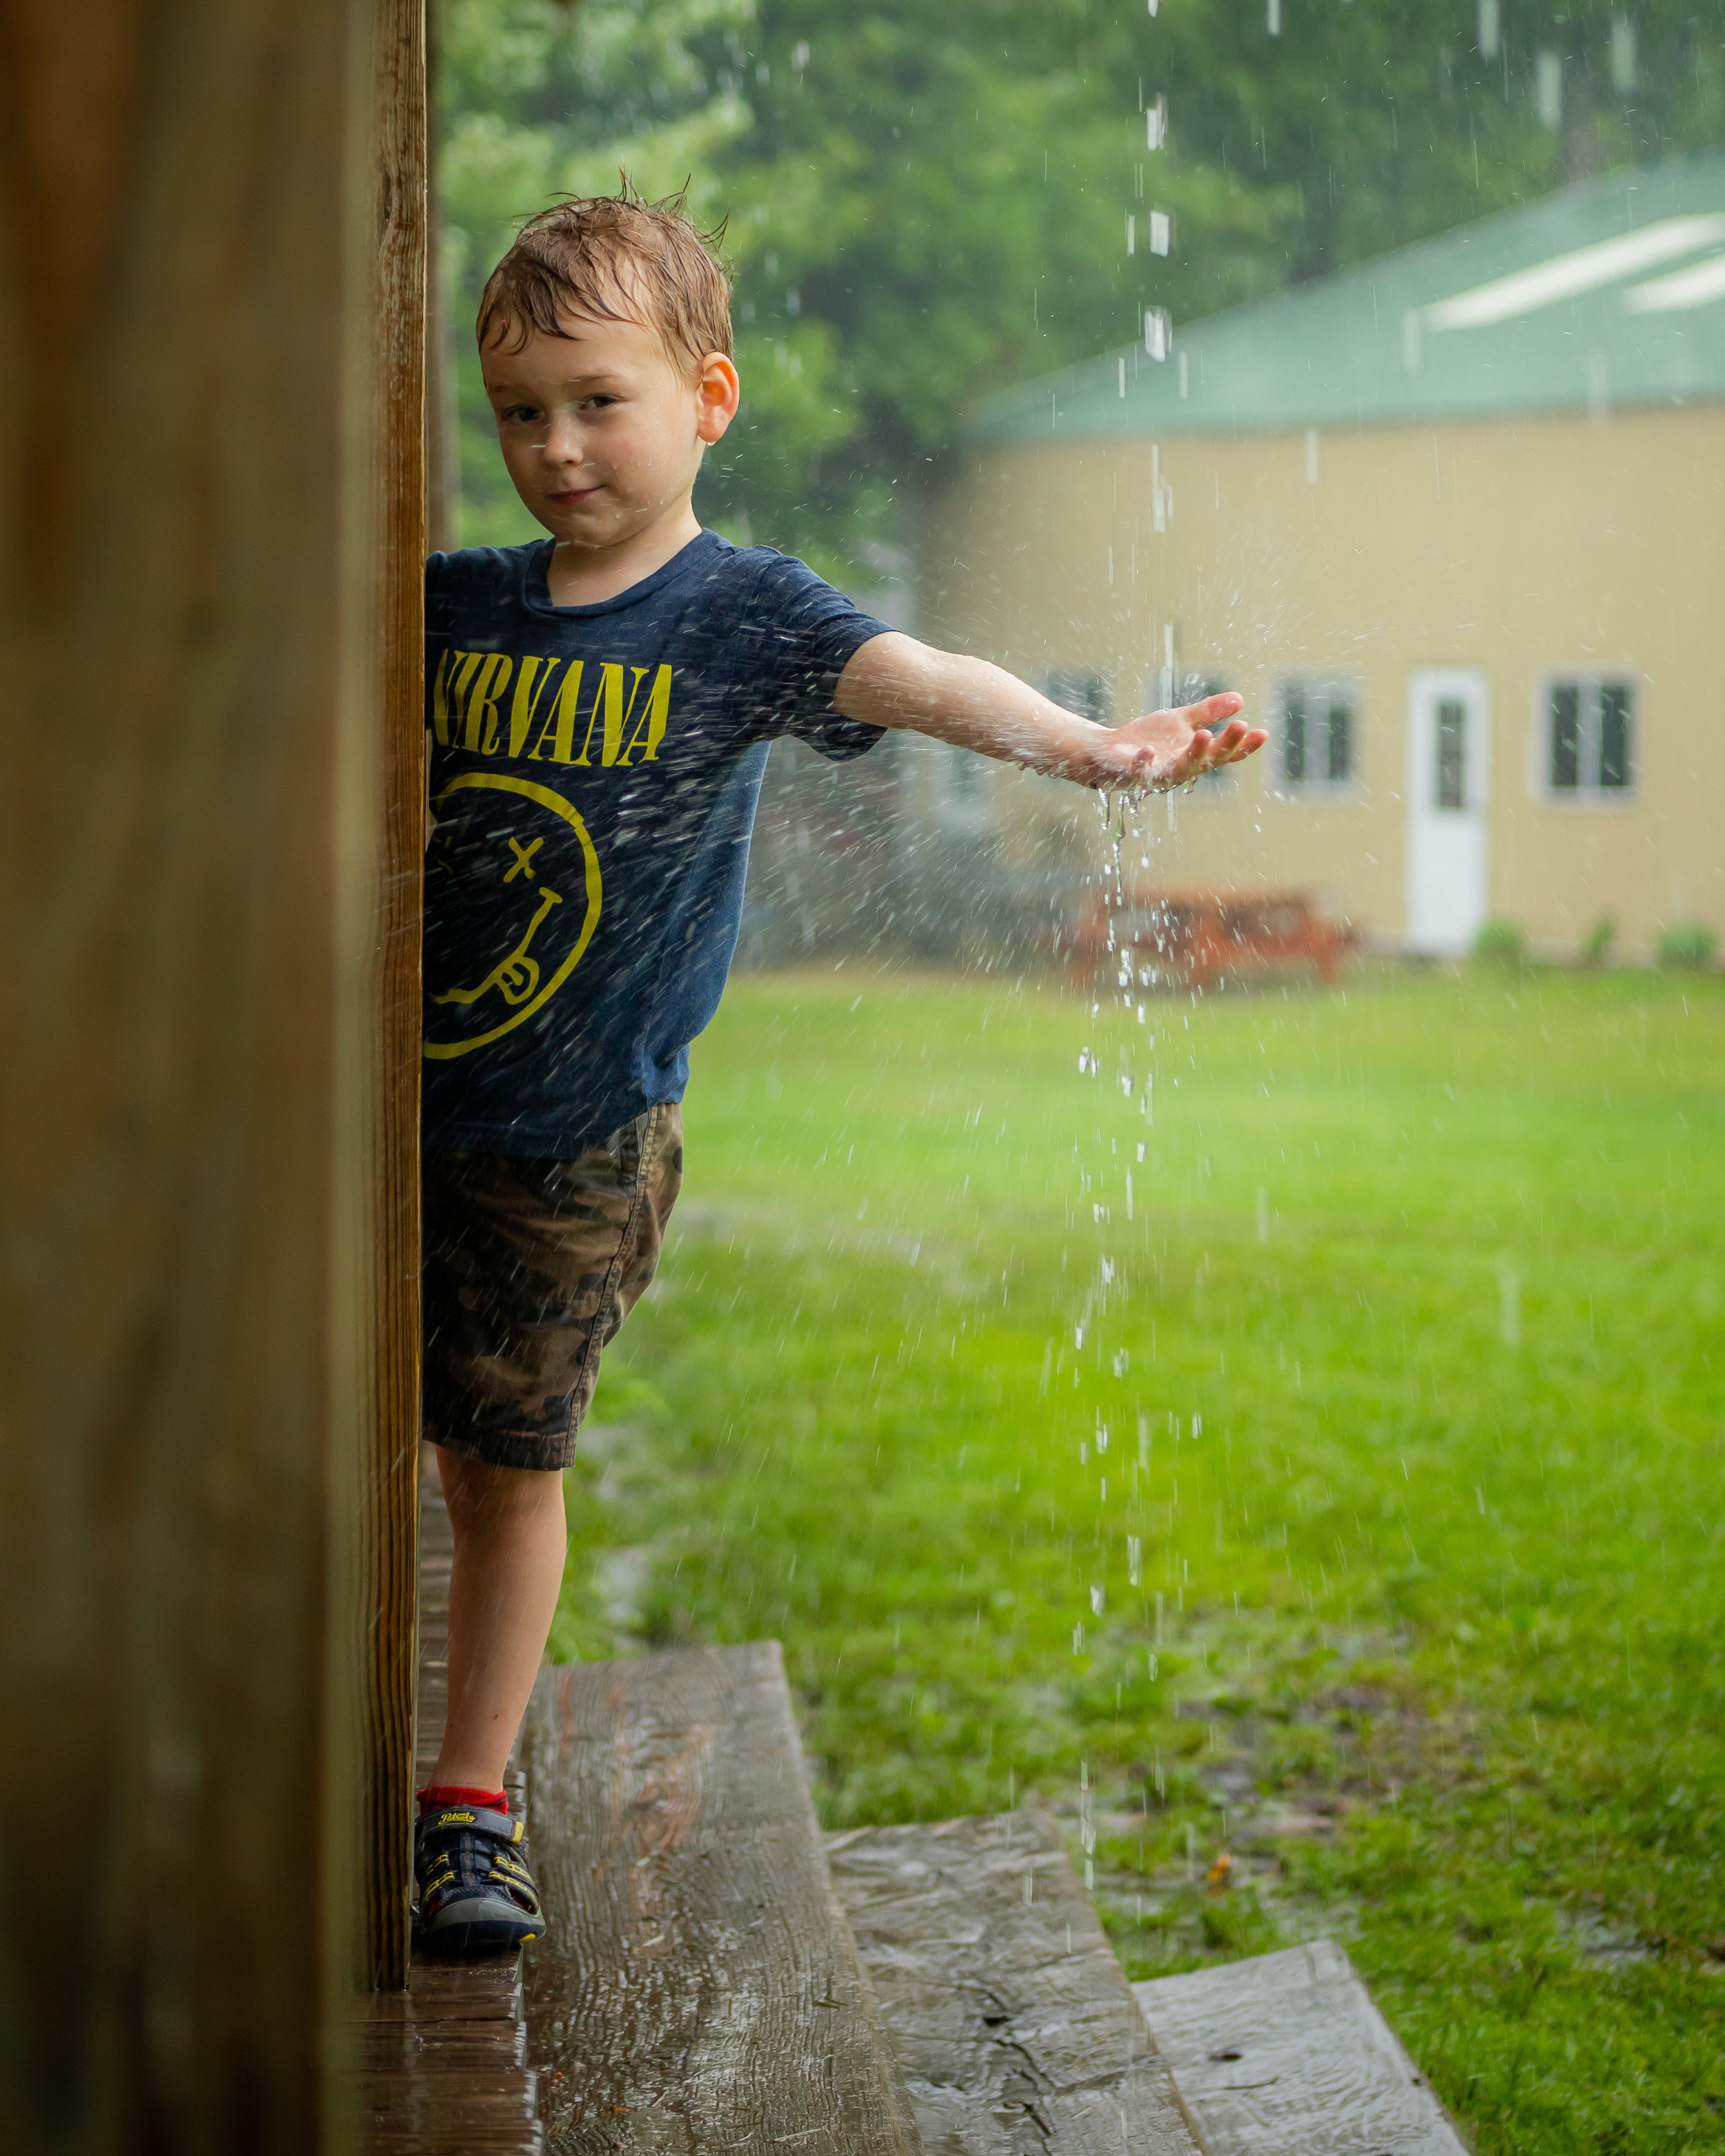 Rainy Day in Wisco - Dustin has a gift with capturing our children's natural personalities through his lens! He was fun to work and very creative throughout our session! We will definitely work with him again!-Ash (Maple Lake, MN)